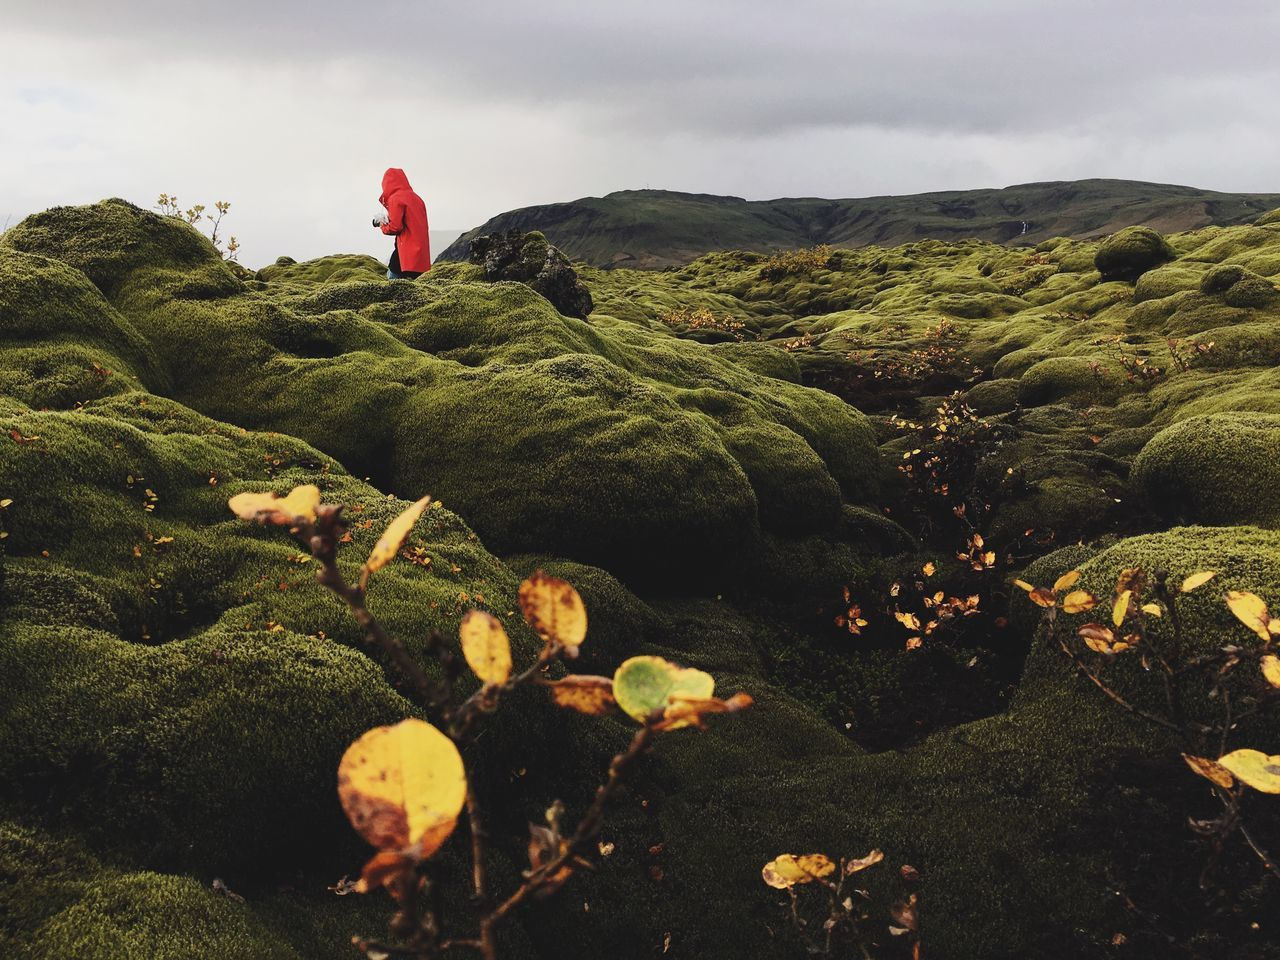 Person standing on moss covered rocks against sky